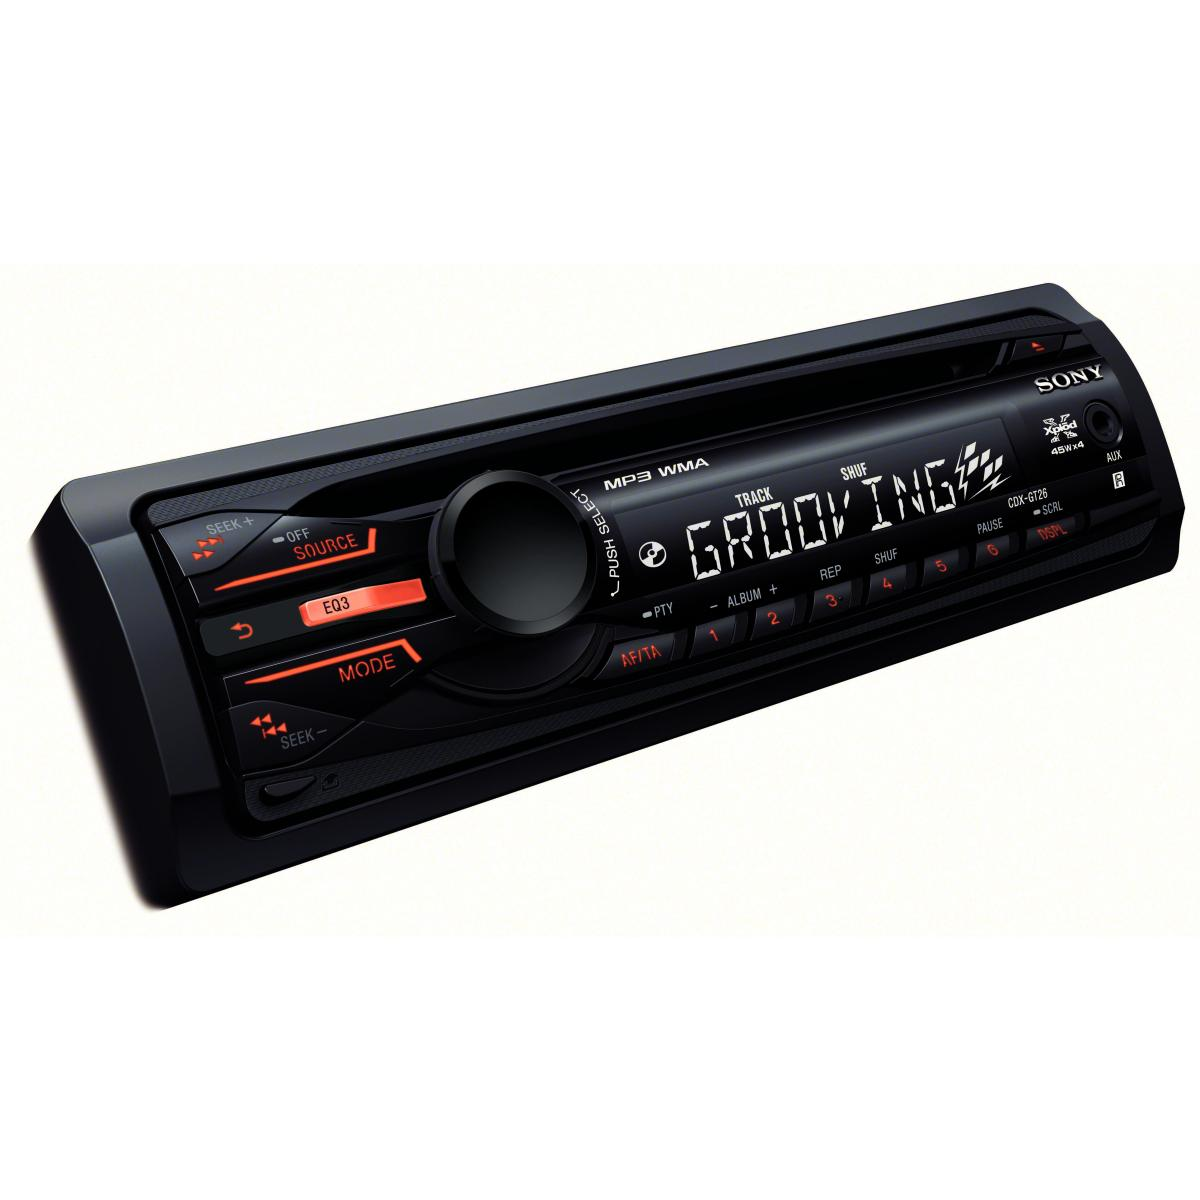 SONY CDX-GT26 CD/MP3 Car CD Player With Front AUX Input